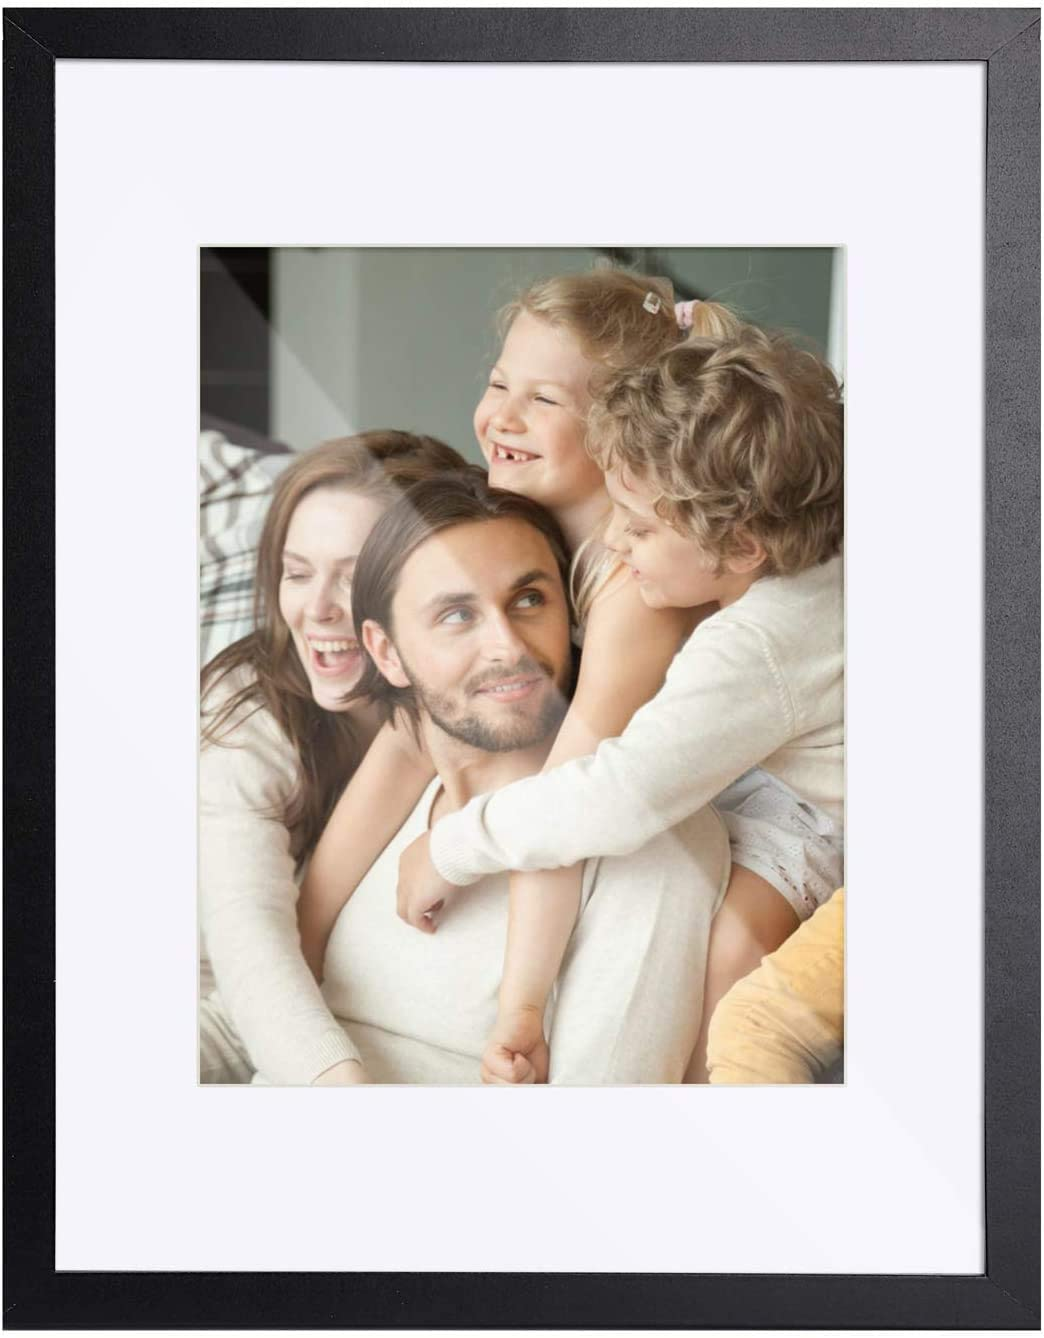 TWING 11x14 Picture Frame Black Wood Displays 8x10 Photo Frame with Mat or 11x14 Inch Without Matted Shatter-Resistant Glass Table Top Display and Wall Mounting